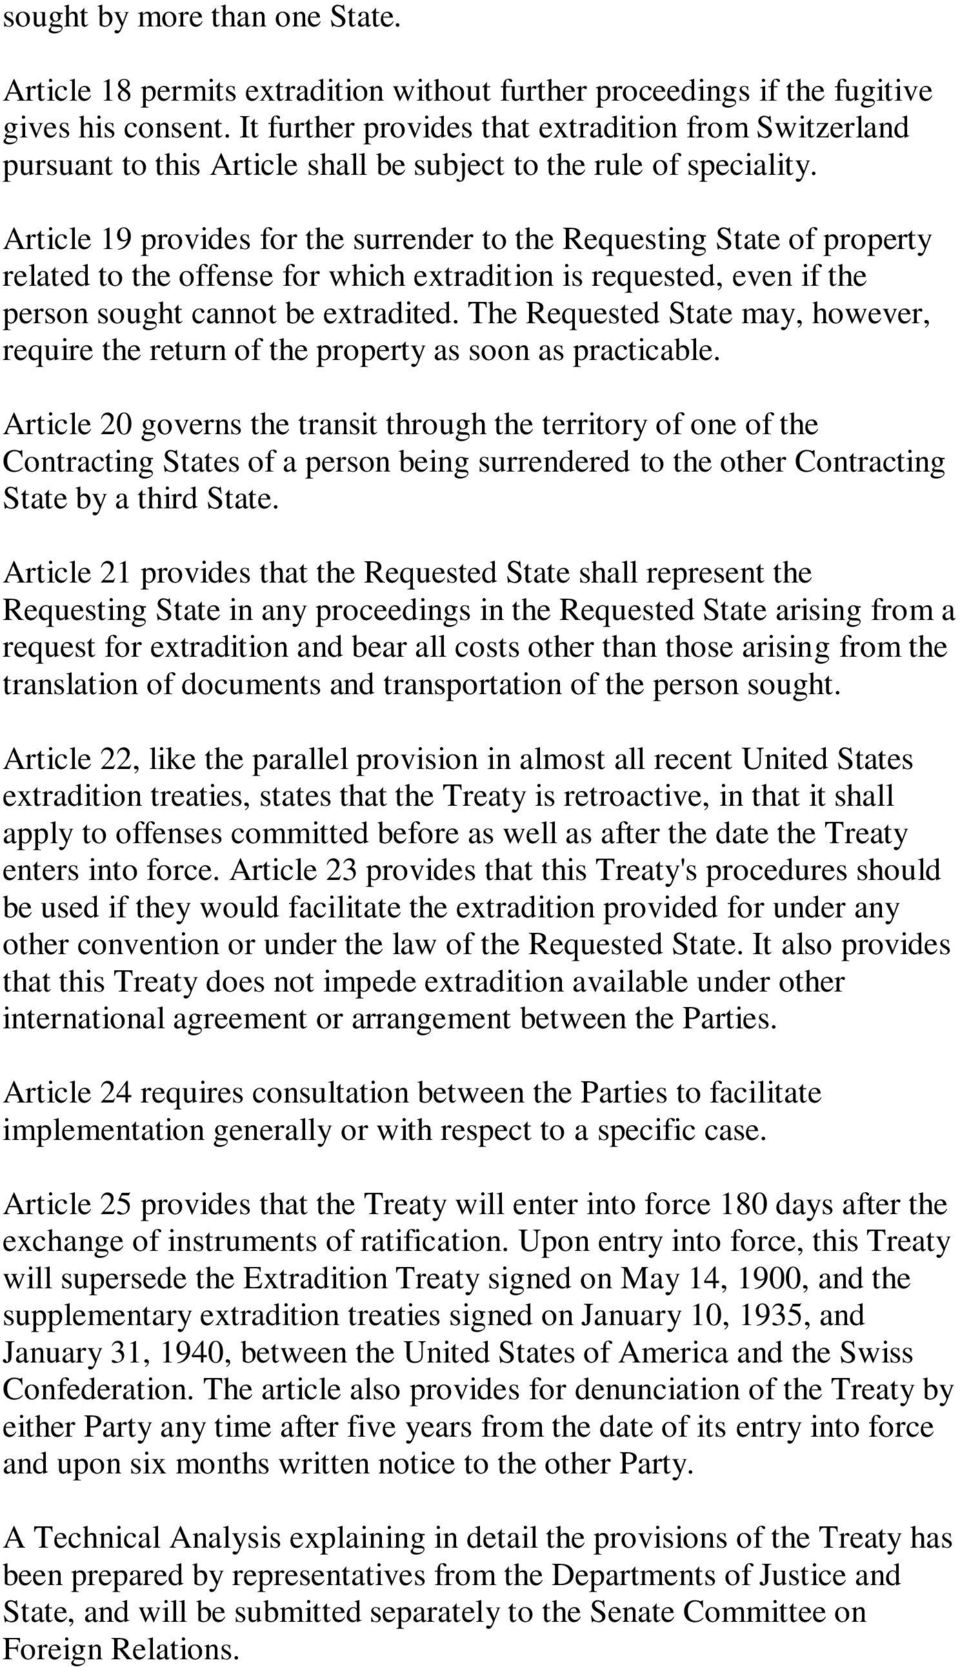 Switzerland International Extradition Treaty with the United States